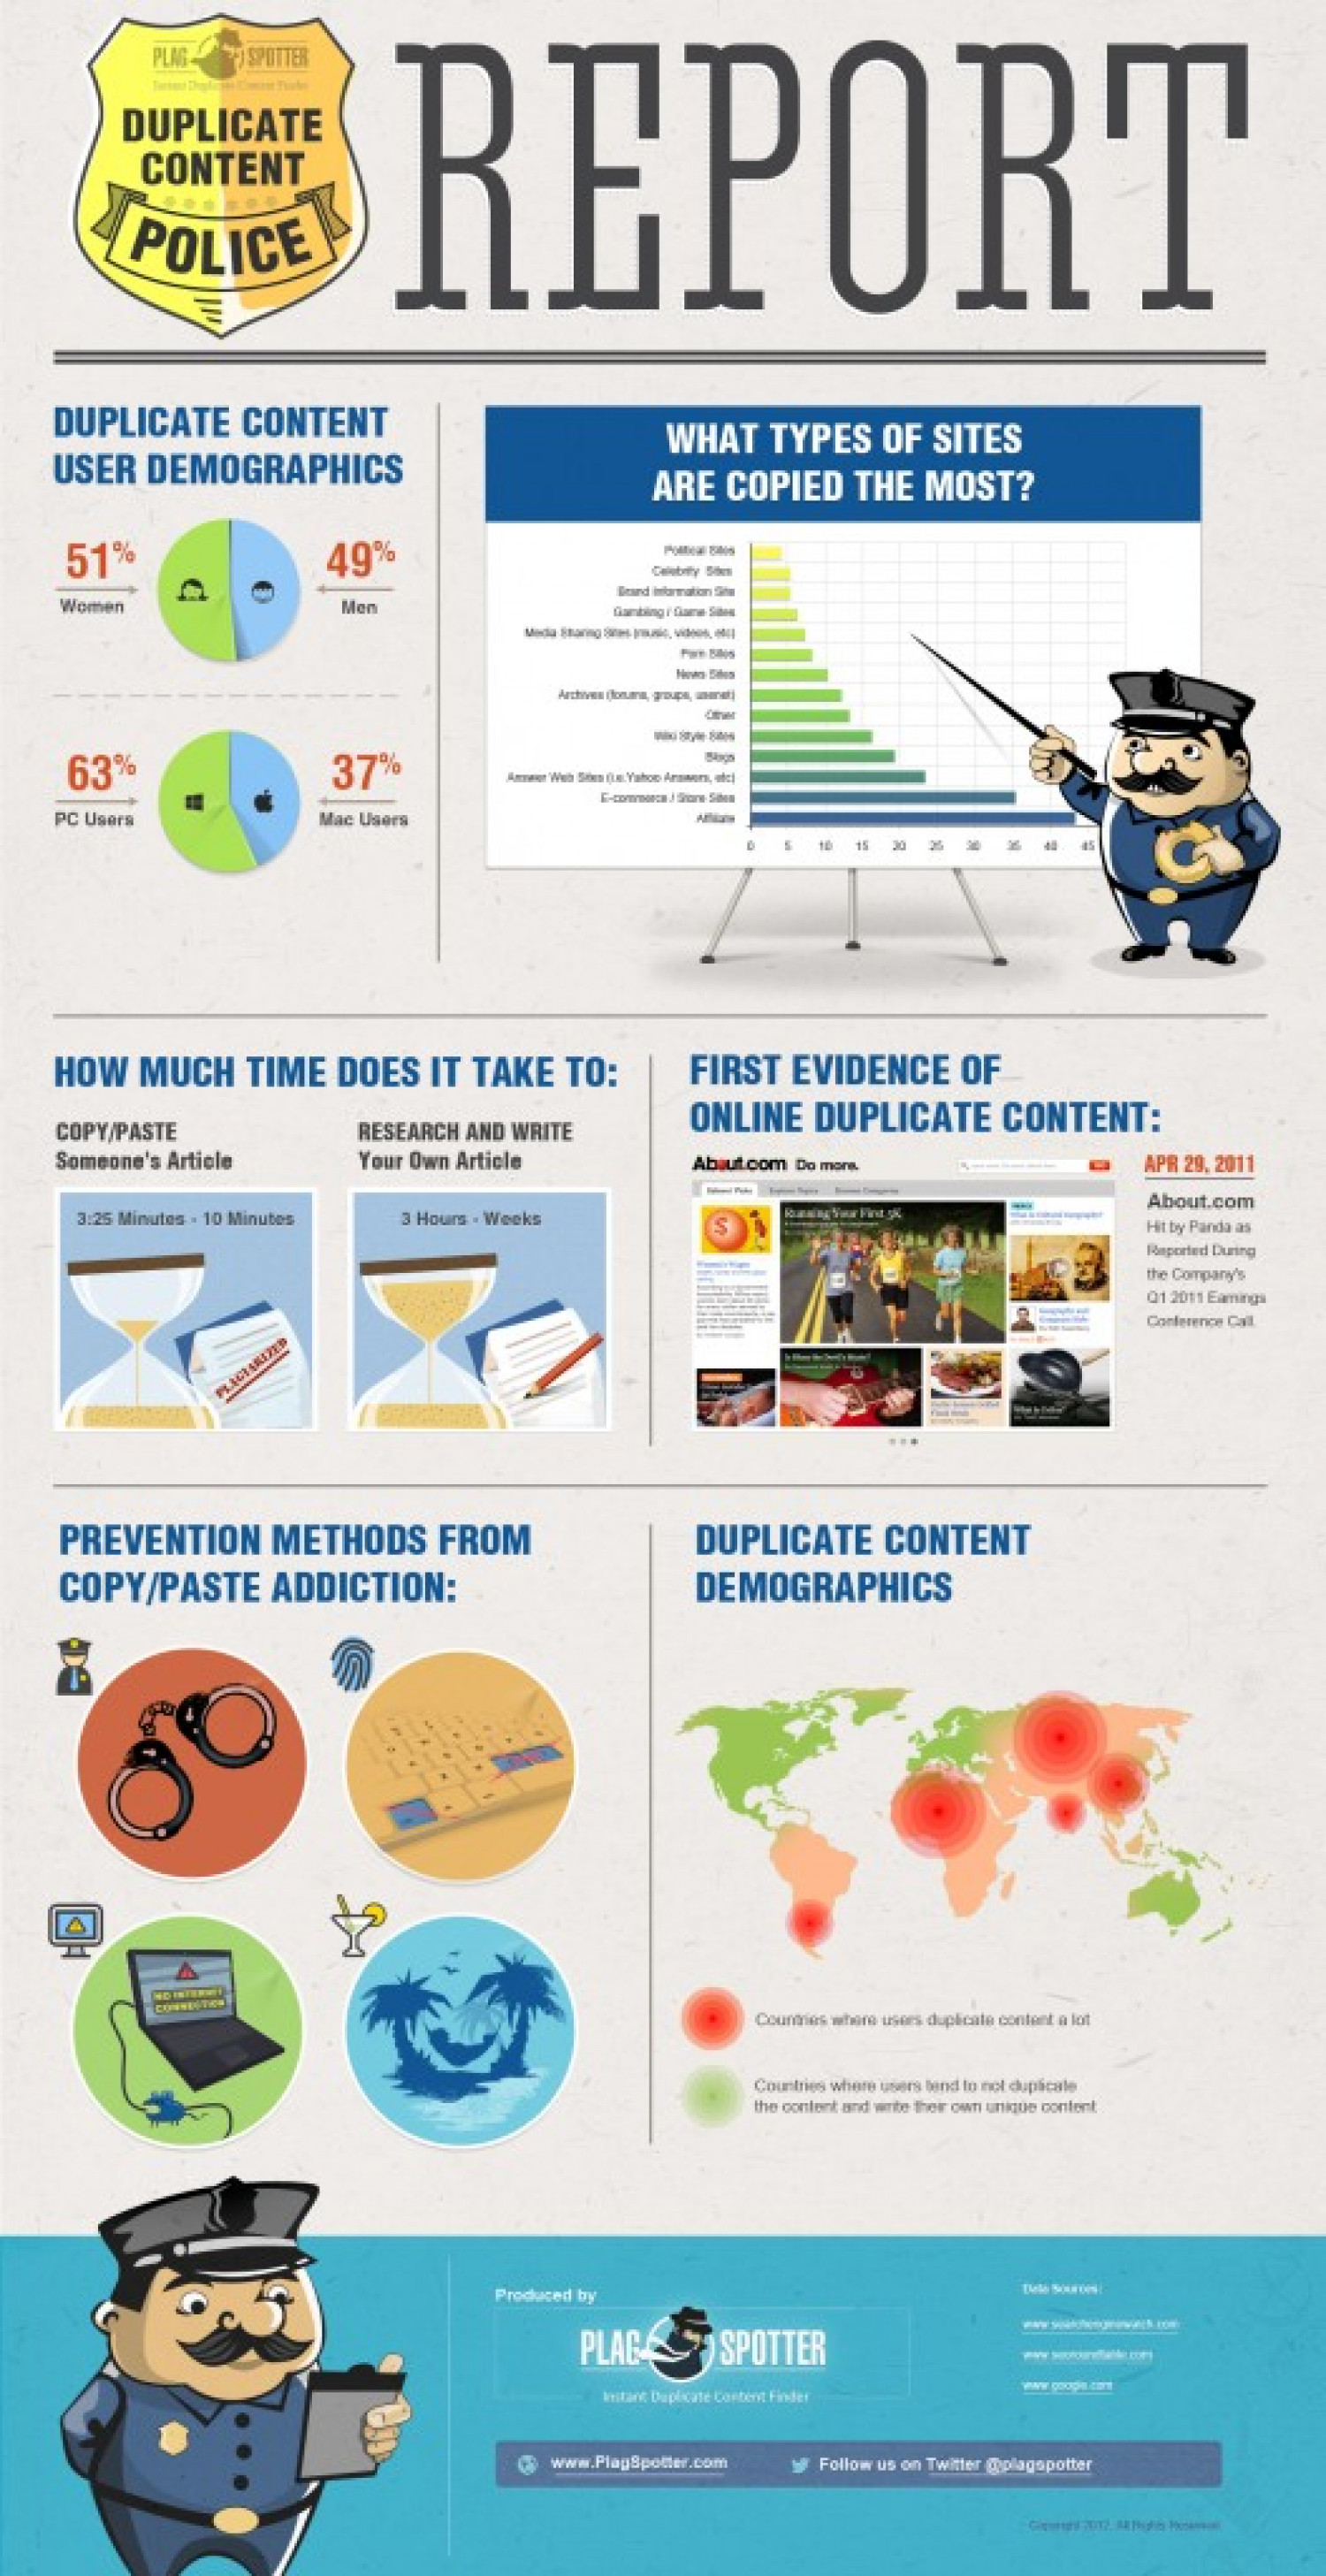 Report From the Duplicate Content Police  Infographic